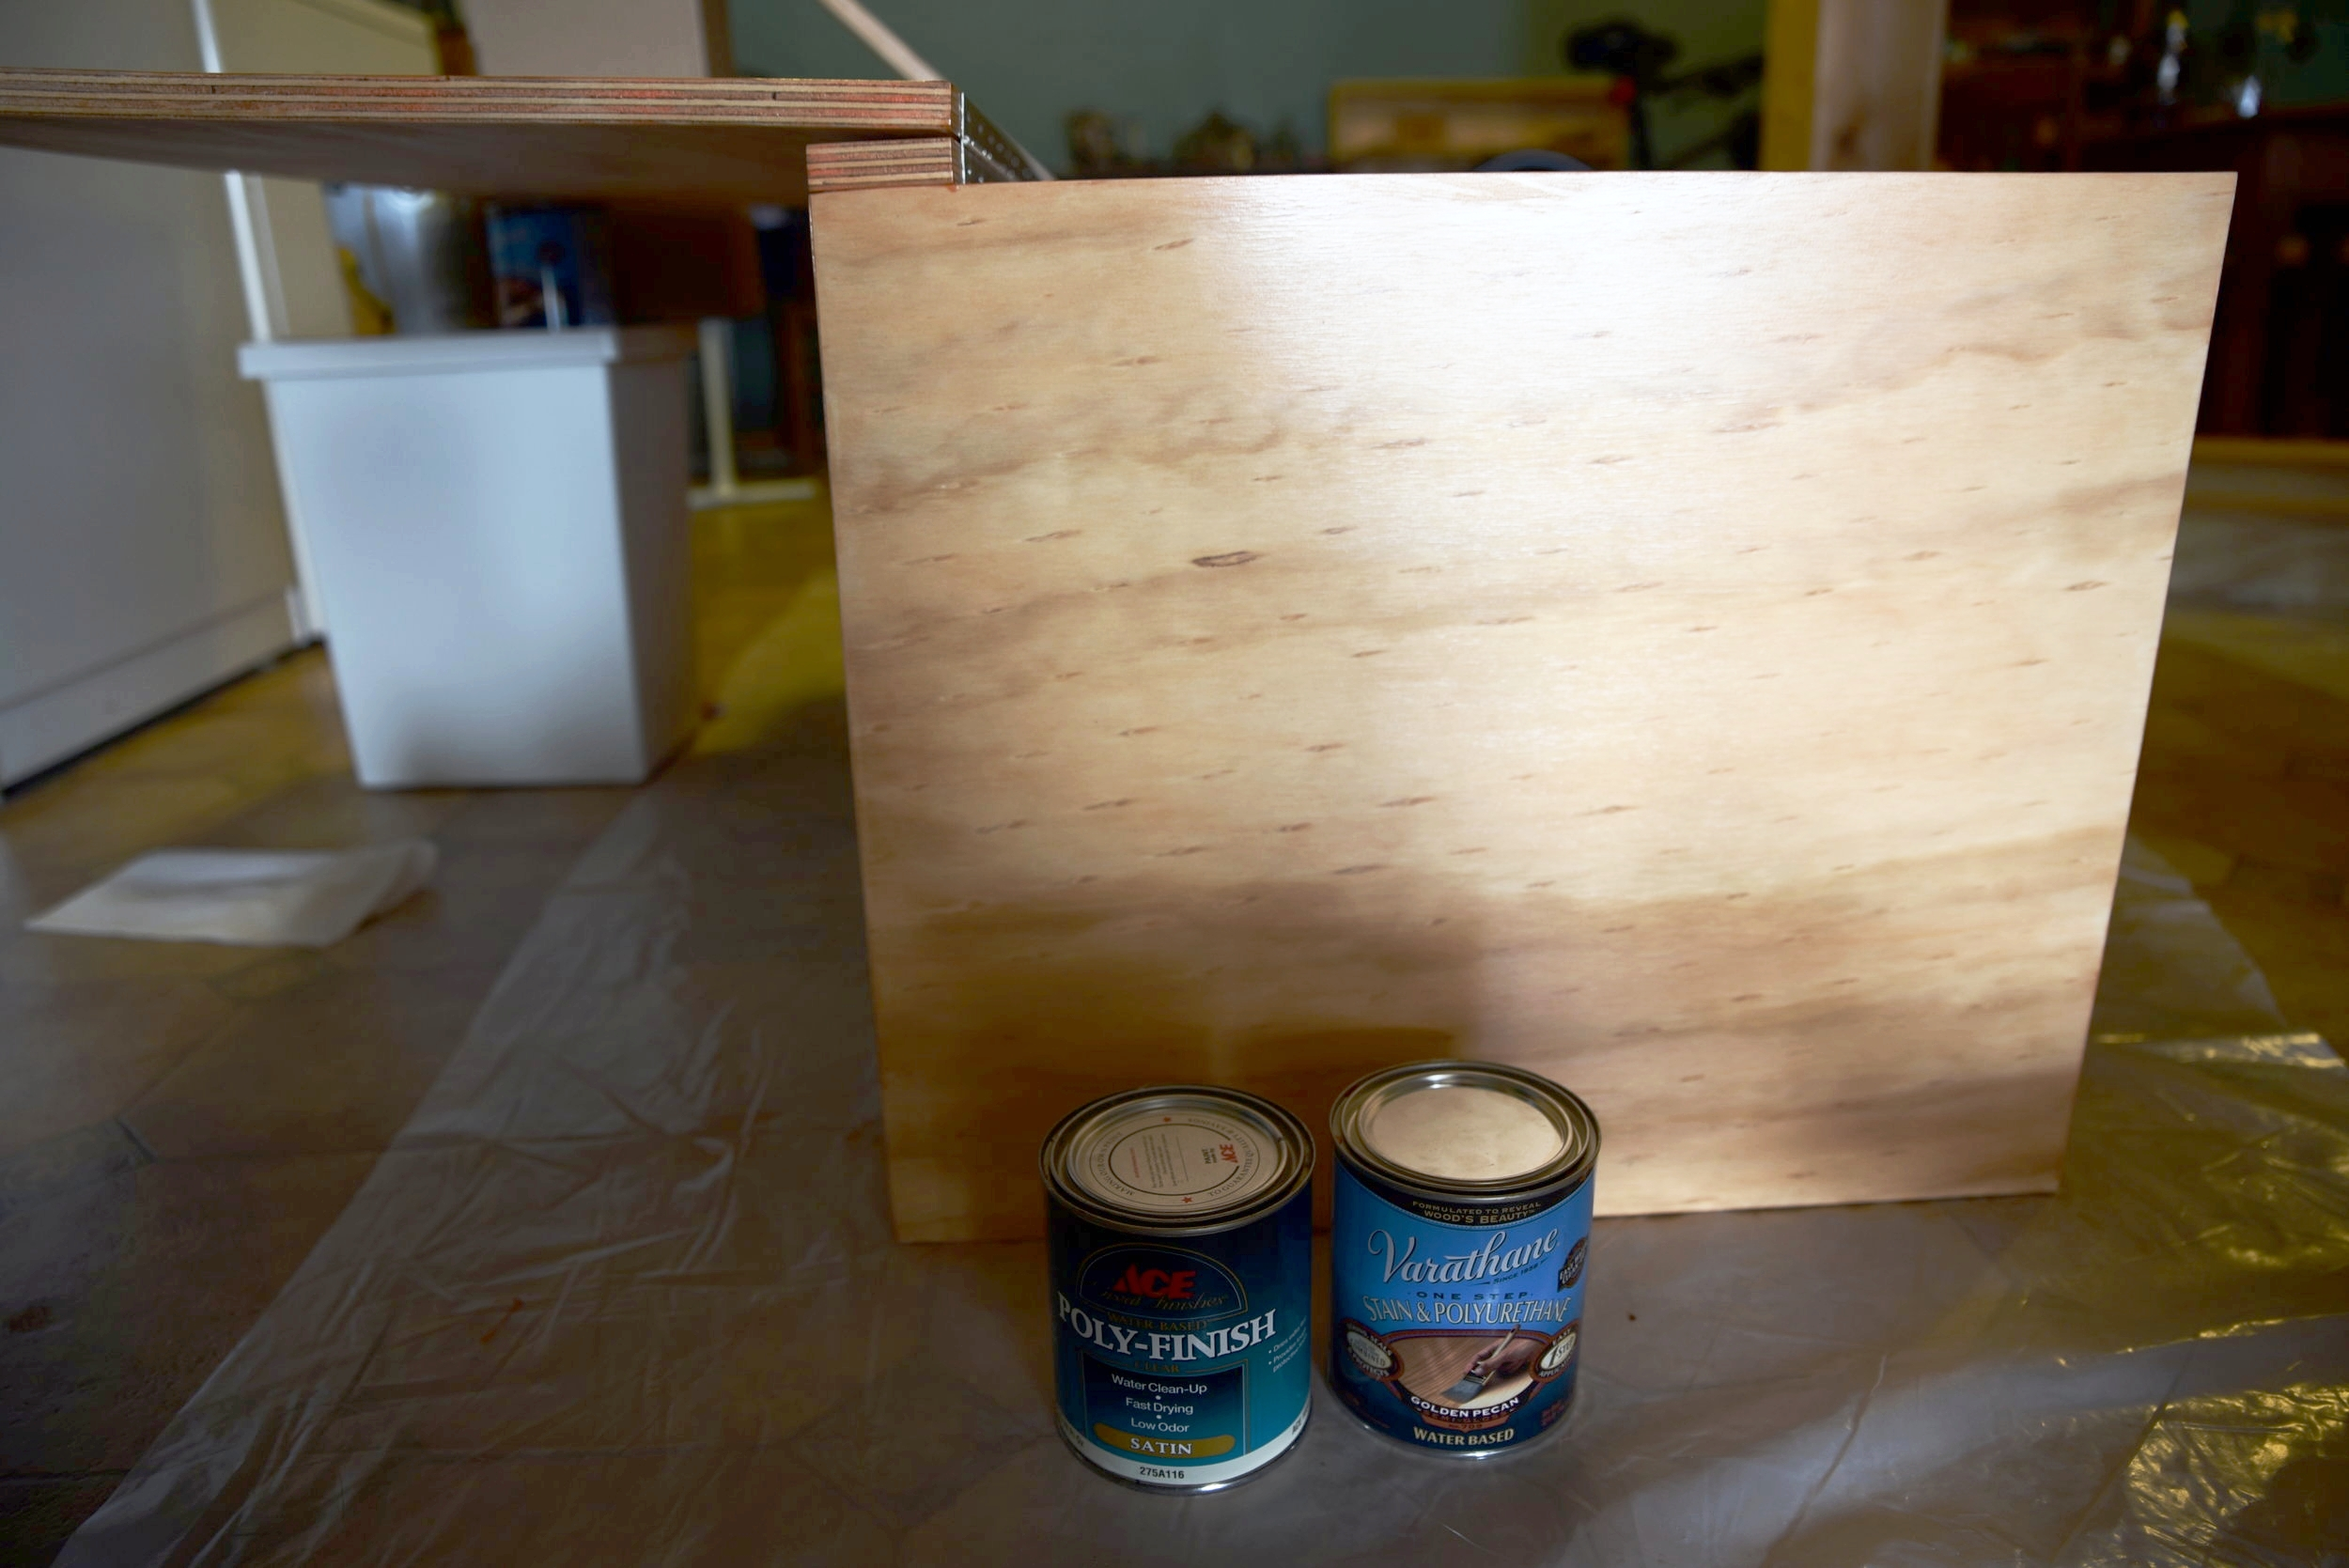 To finish the bench, we used a stain/polyurethane combo finish for the first coat, followed by two coats of clear poly.